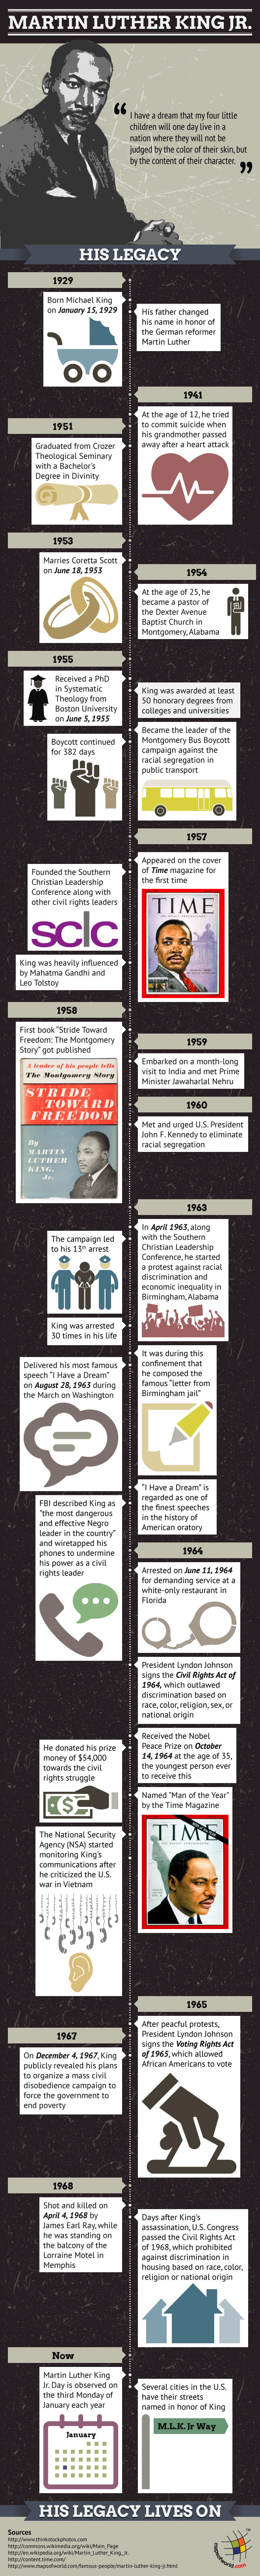 martin luther king jr biography childhood education timeline infographic on martin luther king jr